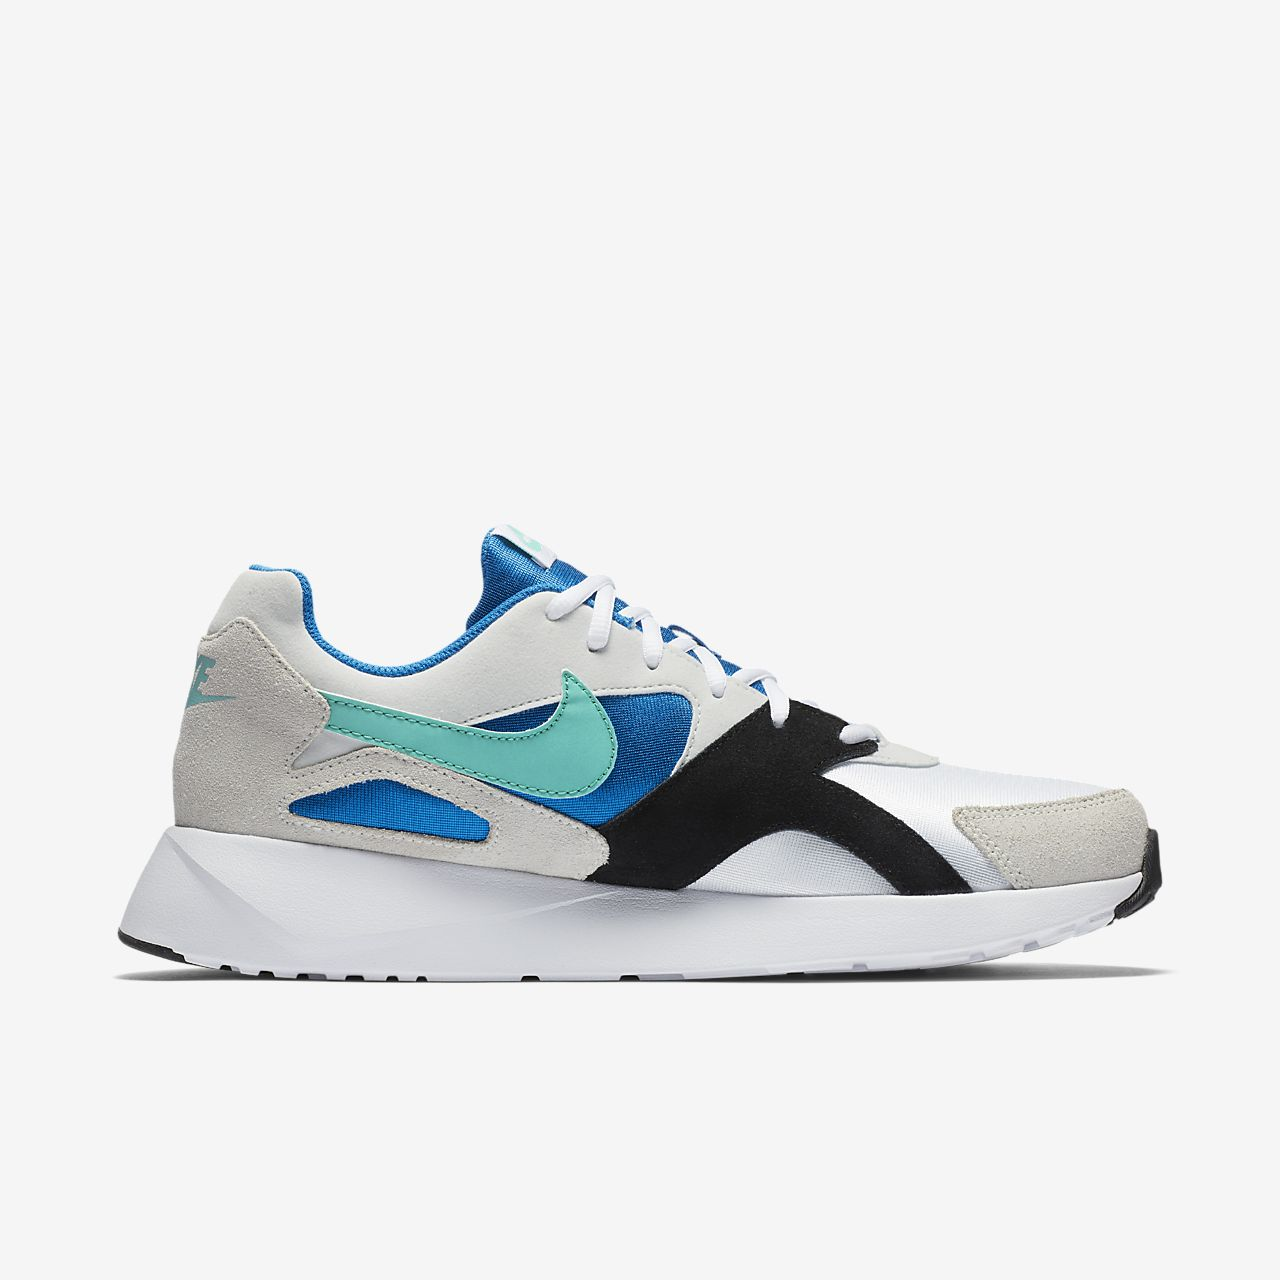 Pantheos Trainers In White 916776-100 - White Nike t7XpT